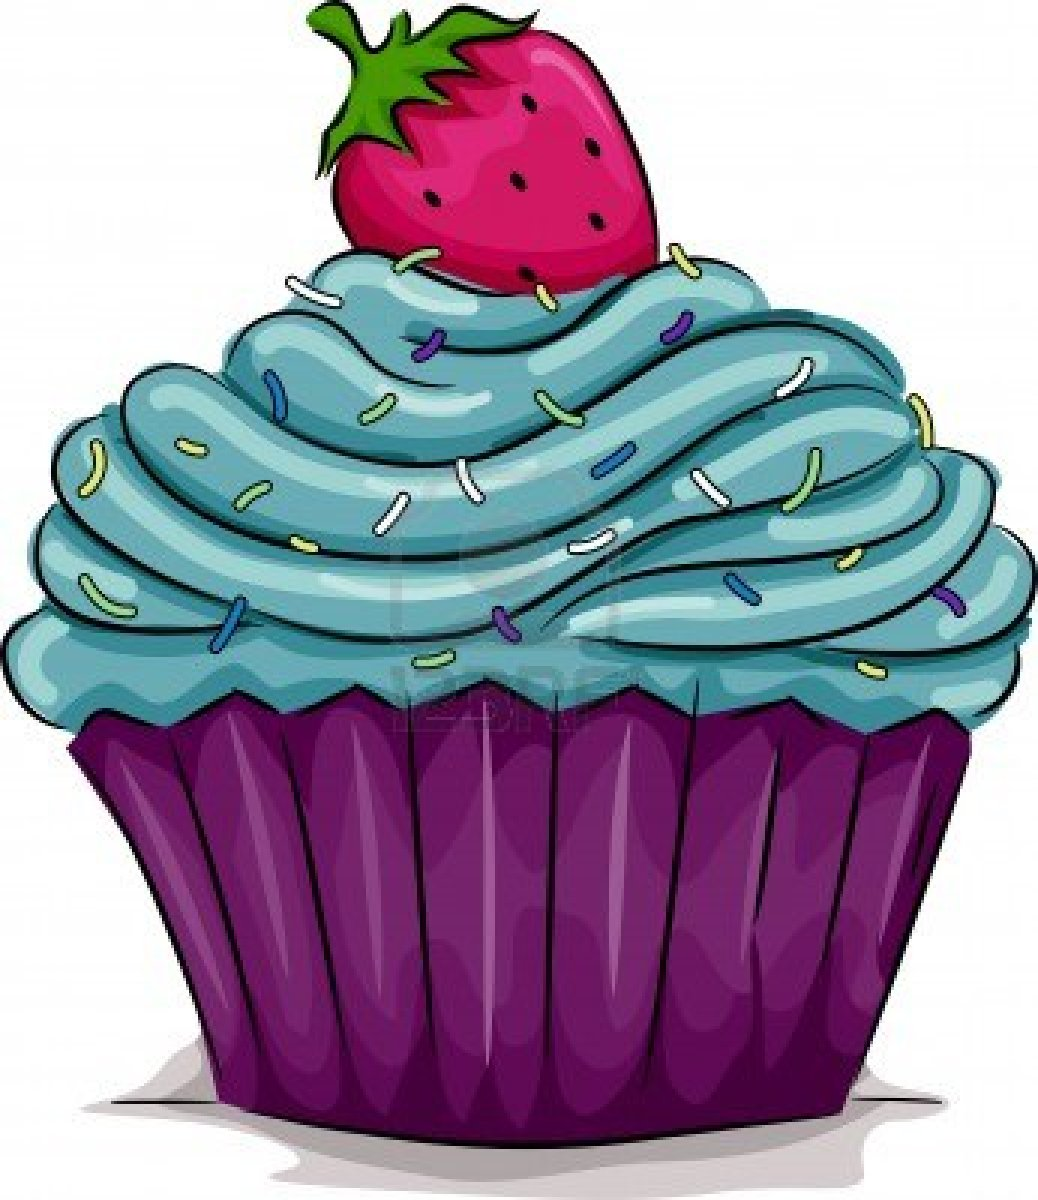 Animated Cupcake Clipart - Clipart Kid